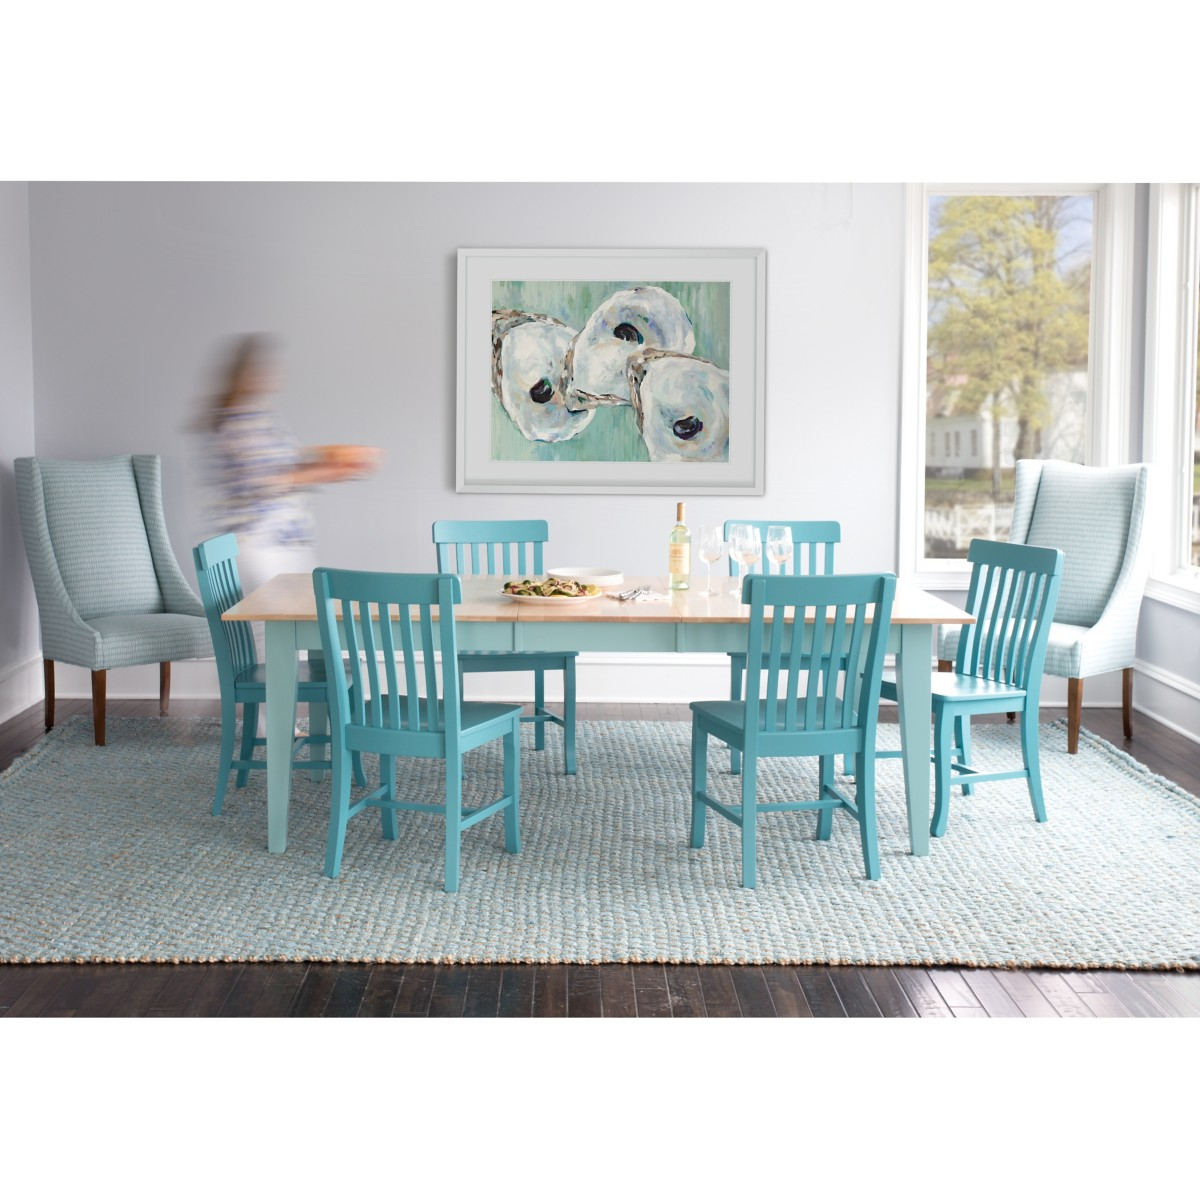 Turquoise Kitchen Table Choice Image - Table Decoration Ideas